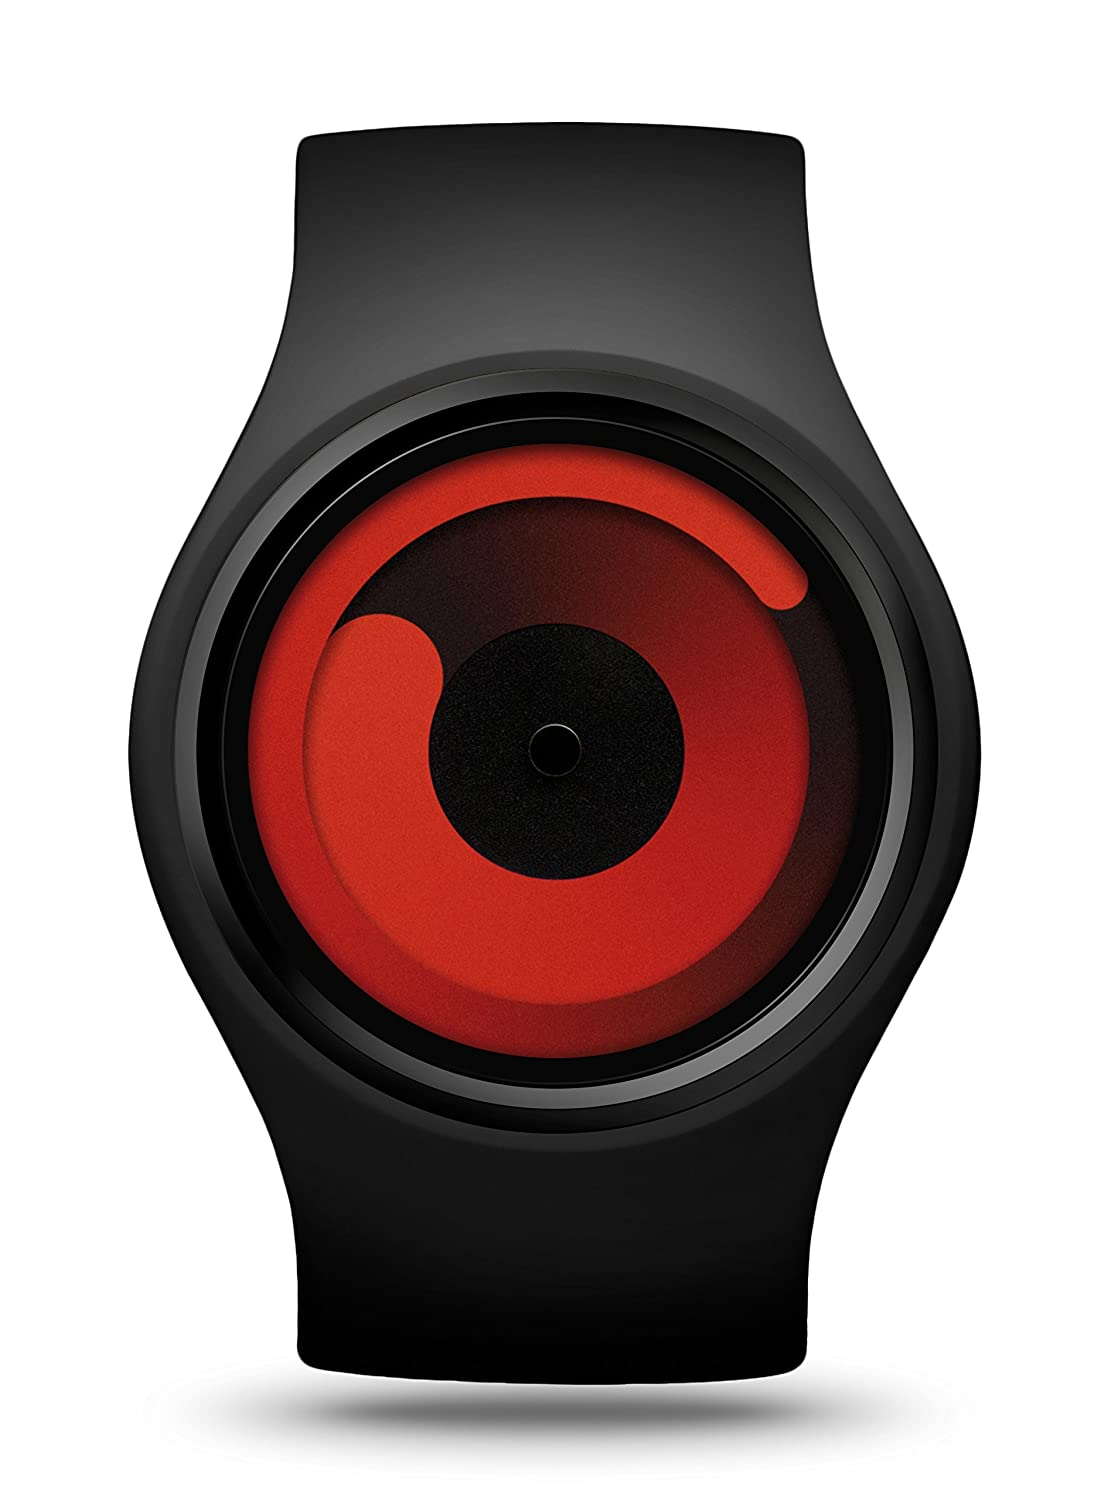 ZIIIRO Gravity Black Red Unisex Uhr flexible Silikon Strap Watch designed in Germany